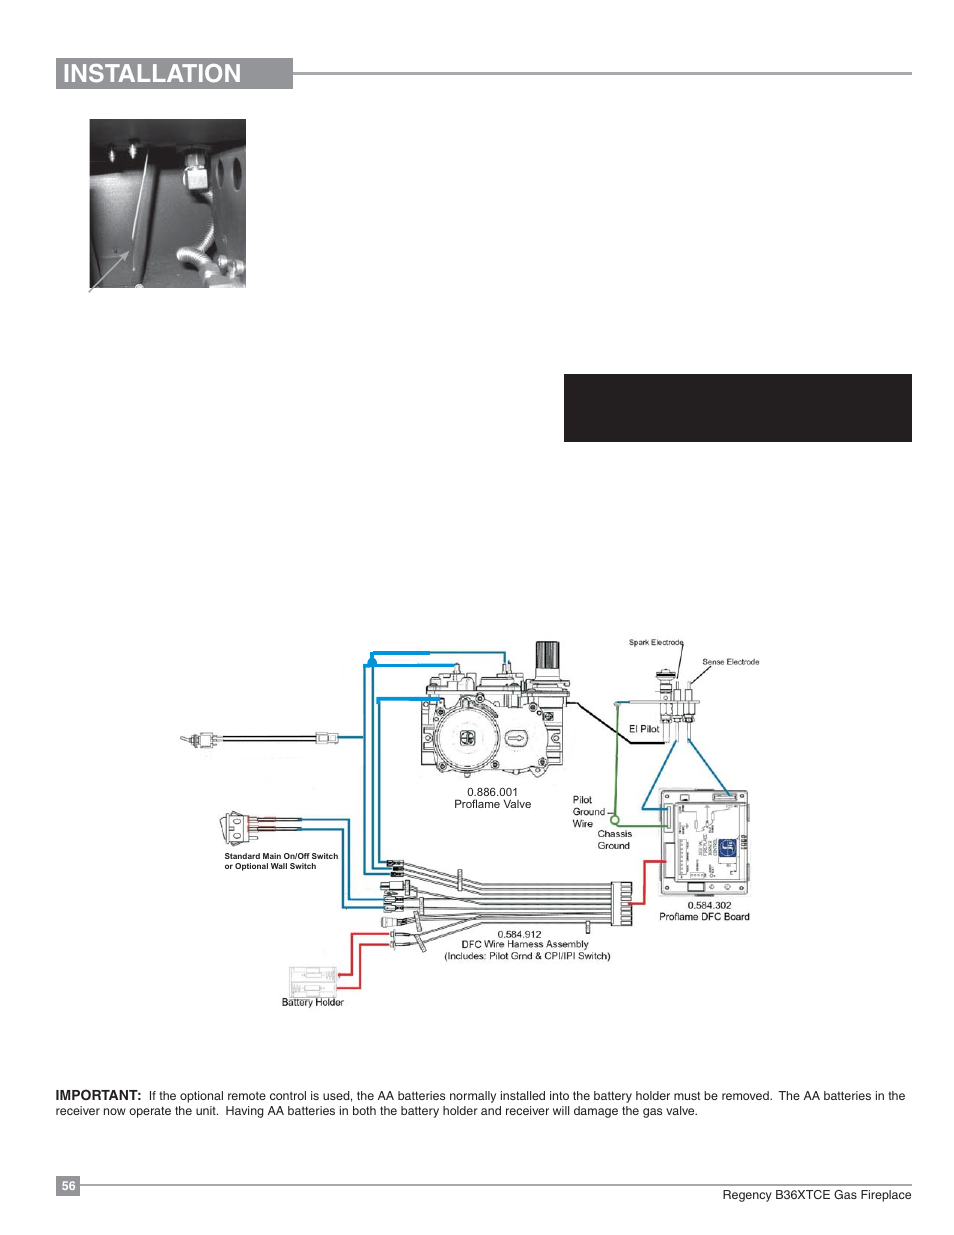 wiring diagram for a gas fireplace blower schematic wiring diagram Fireplace Fan Wiring Diagram